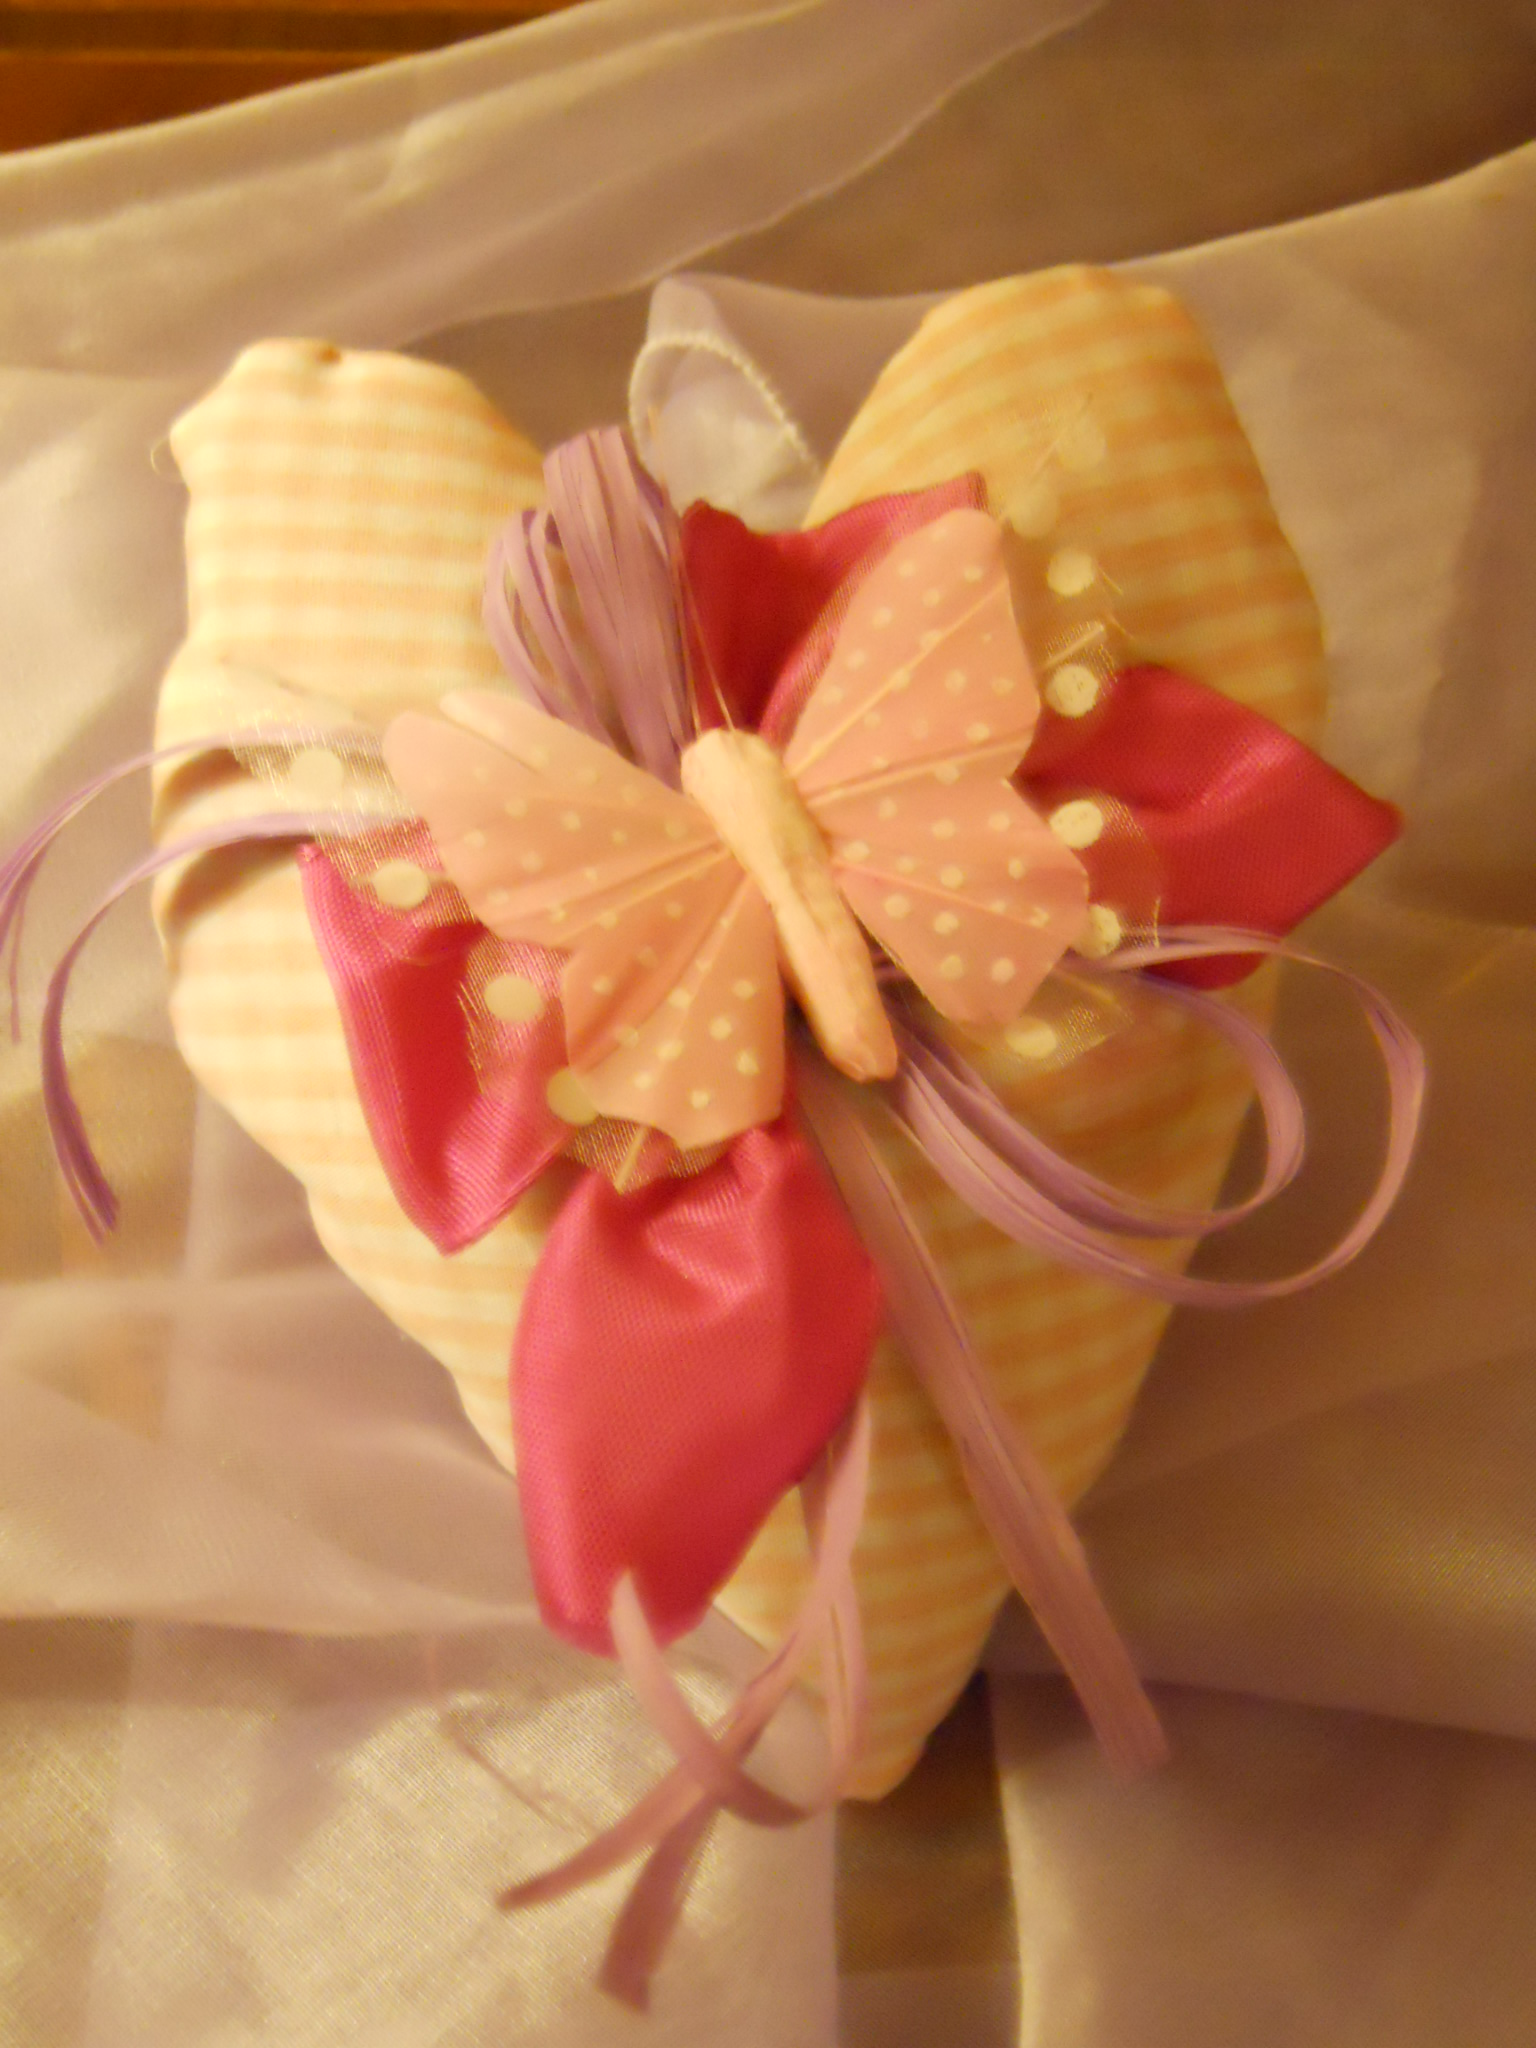 Sweet pink heart, a romantic gift for your Saint Valentine's. Romantic Farmhouse in San Gimignano, Sienna, Taverna di Bibbiano